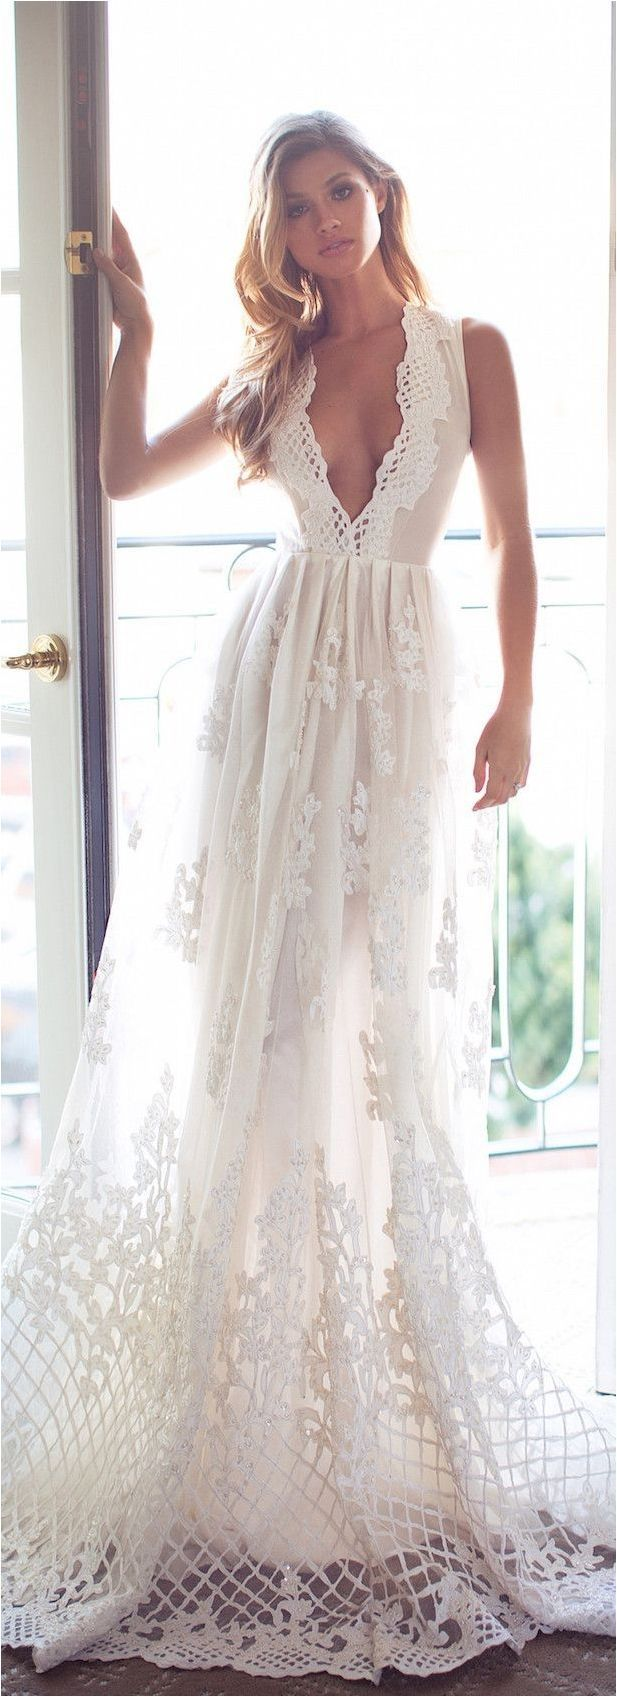 Quiz lace dress april 2019  best wedding images on Pinterest  Wedding ideas Weddings and